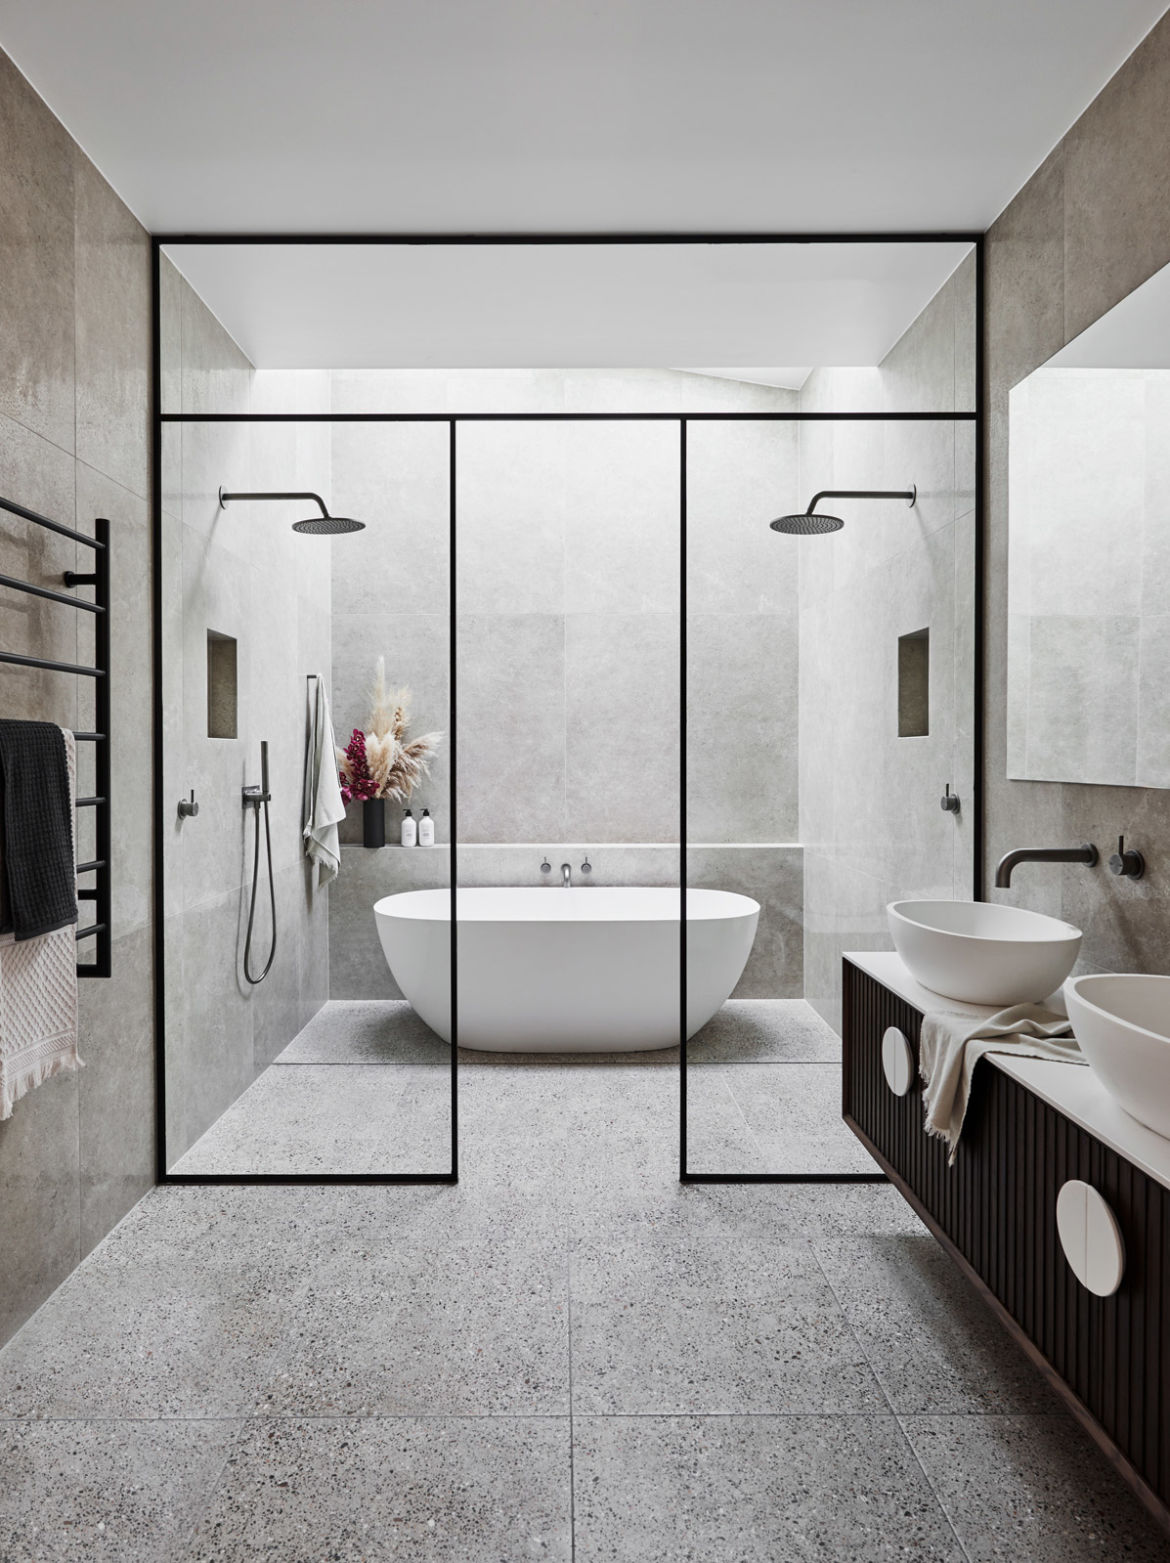 2020 Bathroom Design Trends This Year And Beyond Tlc Interiors